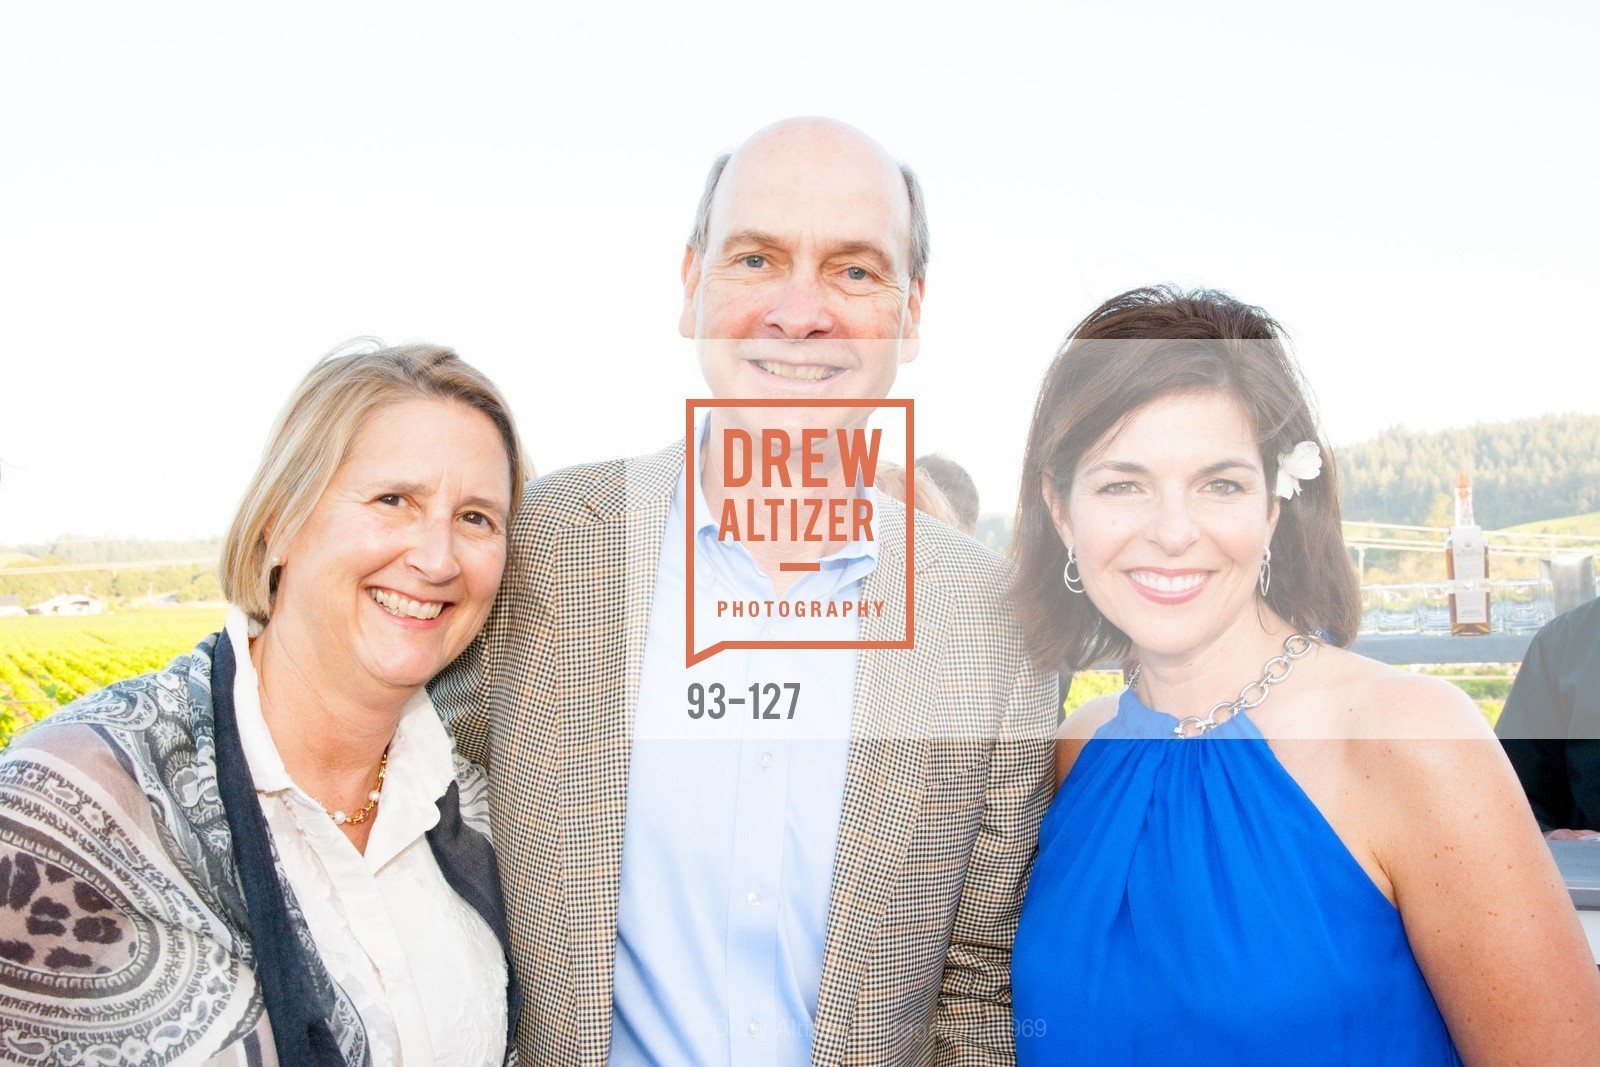 Prisca Geesling, Keith Geesling, Sarah Lucas, An Evening in the Vineyard hosted by JACK CALHOUN & TRENT NORRIS, Jack Calhoun & Trent Norris Vineyard. 3393 Dry Creek Road, Healdsburg CA 95448, May 22nd, 2015,Drew Altizer, Drew Altizer Photography, full-service agency, private events, San Francisco photographer, photographer california